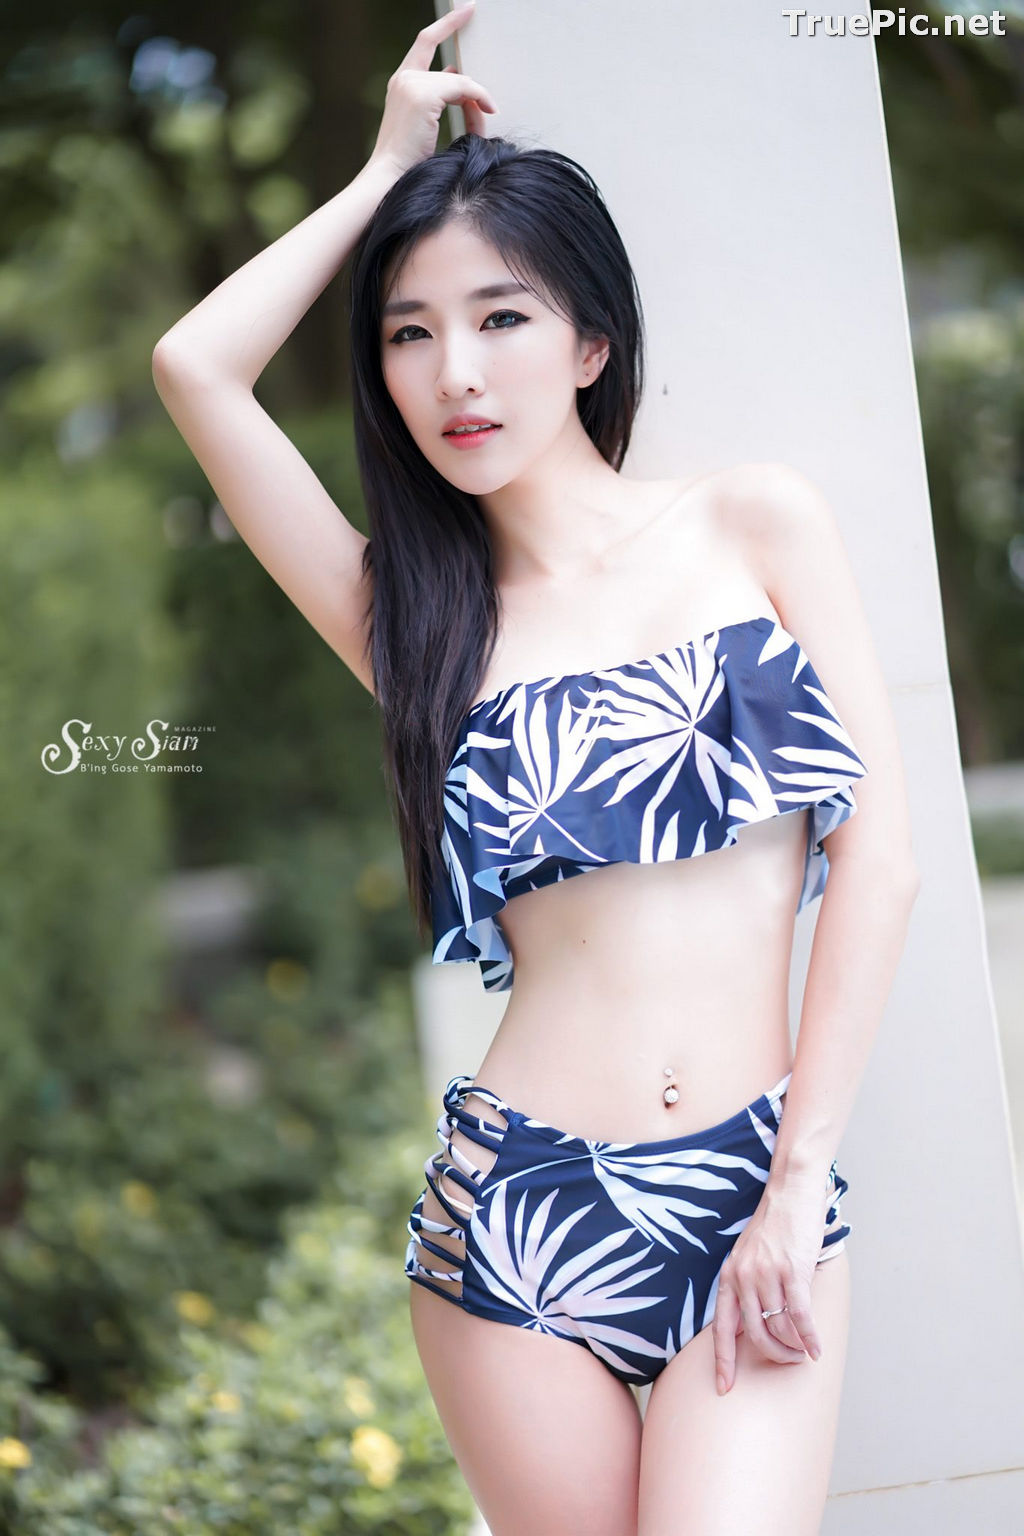 Image Thailand Model - Ohly Atita - Summer Bikini Collection - TruePic.net - Picture-1